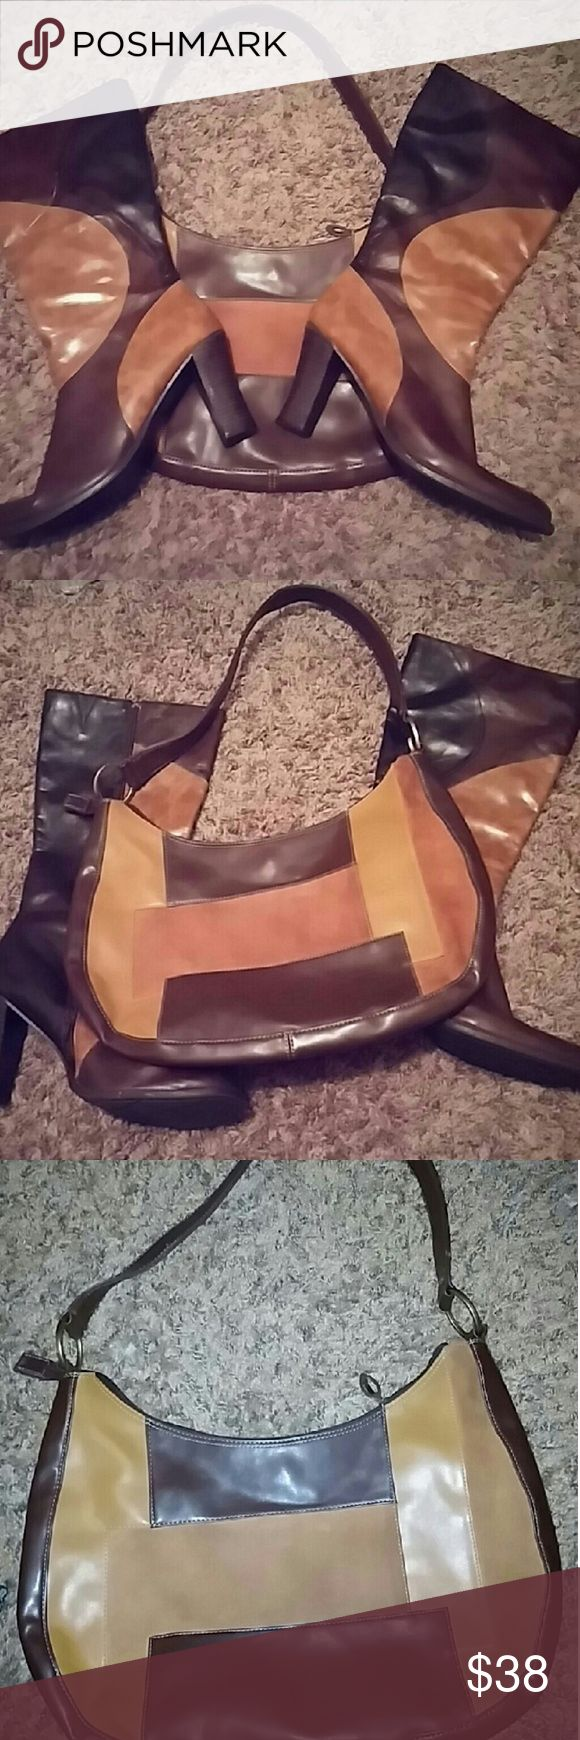 Predictions boots 9west purse Predictions all man made multi colored chunky 3.5 inches heeled side zip boot and 9west all man made material purse with leather trim the caramel colored sections are suede boots size 12 Boot legs are 11 inches tall width 16inches Shoes Heeled Boots